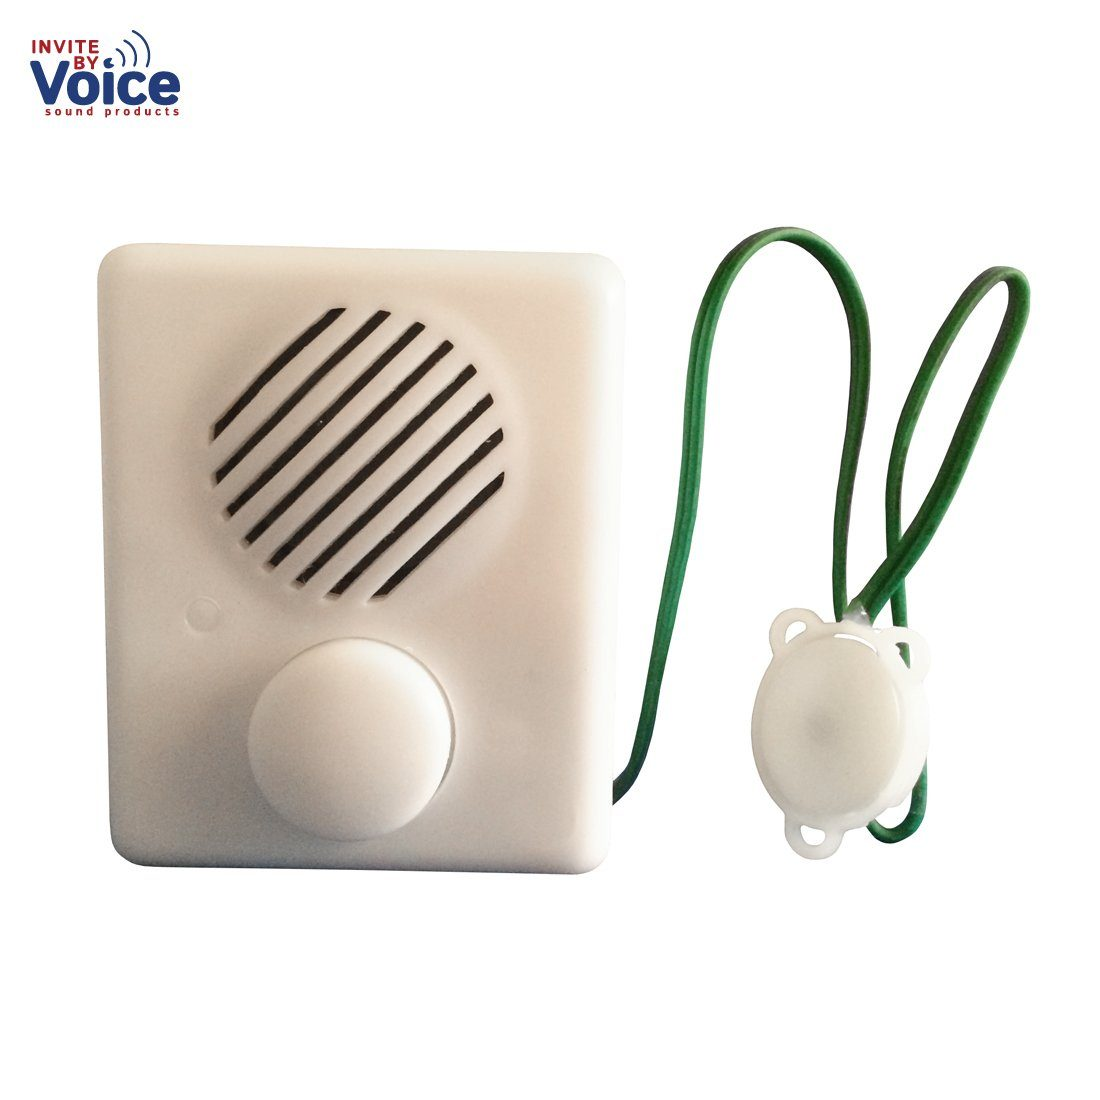 Multi Message Recordable Voice Box For Stuffed Animal Craft